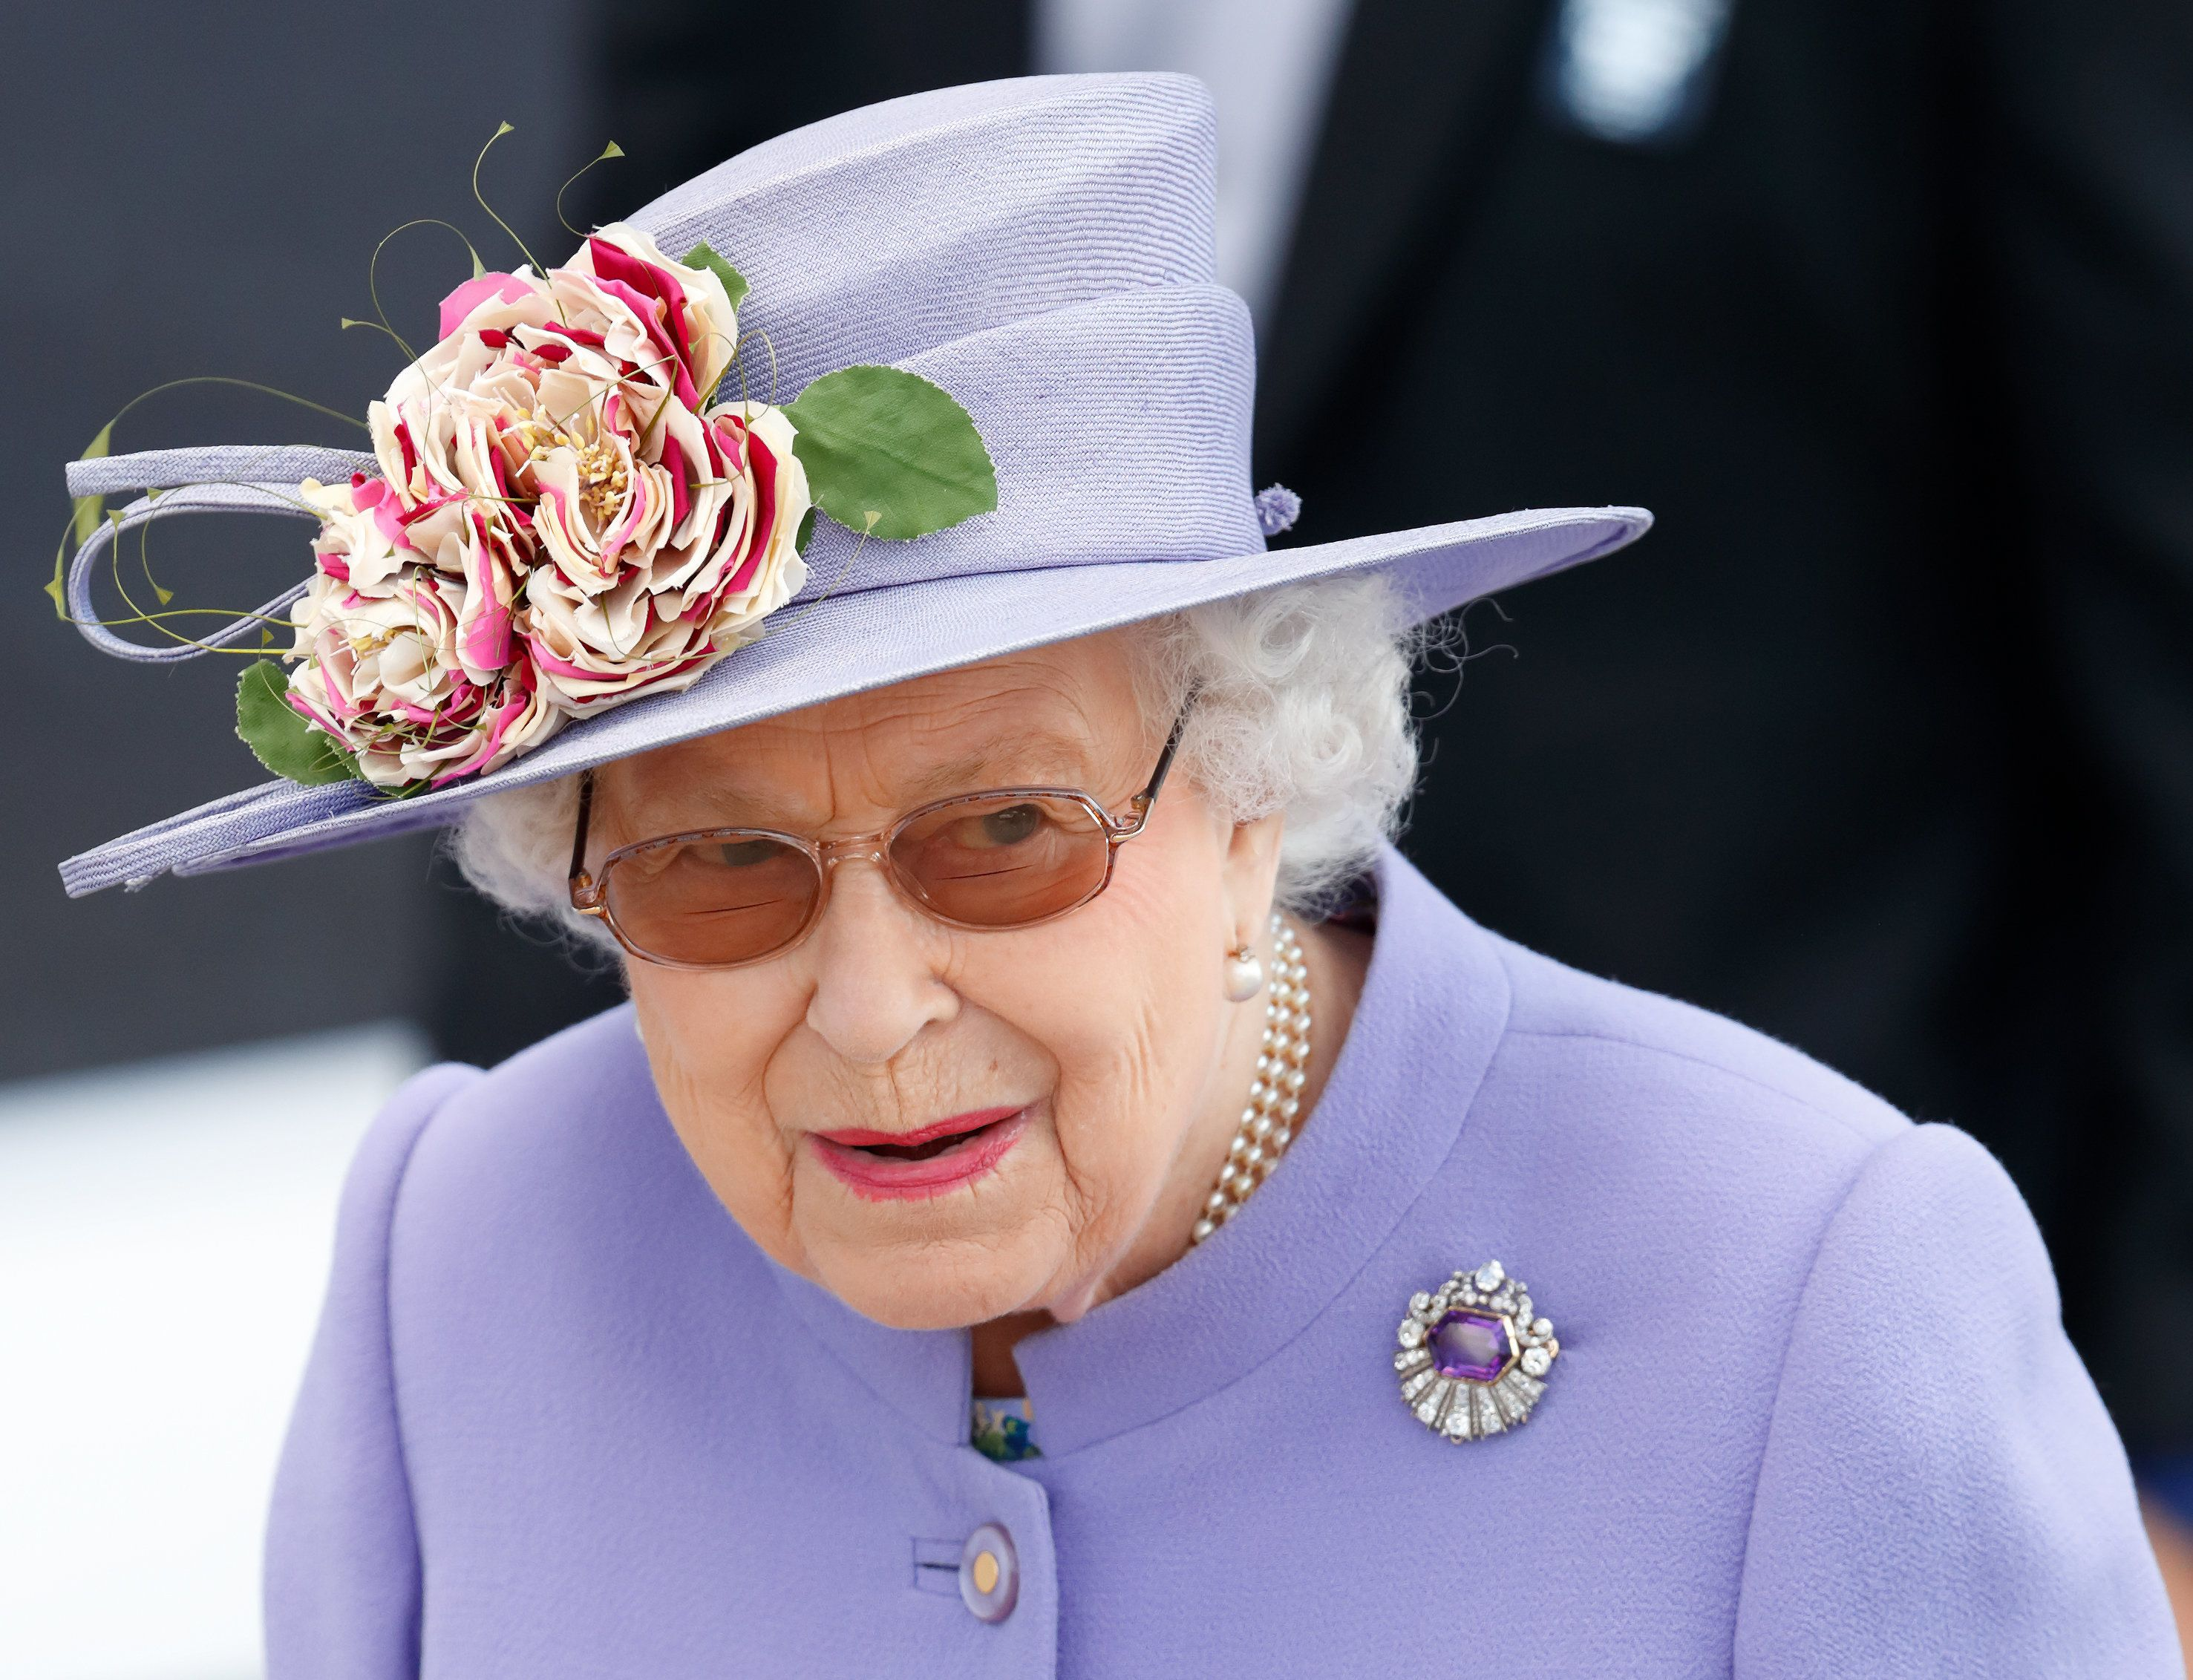 Queen Elizabeth Underwent Cataract Surgery Last Month